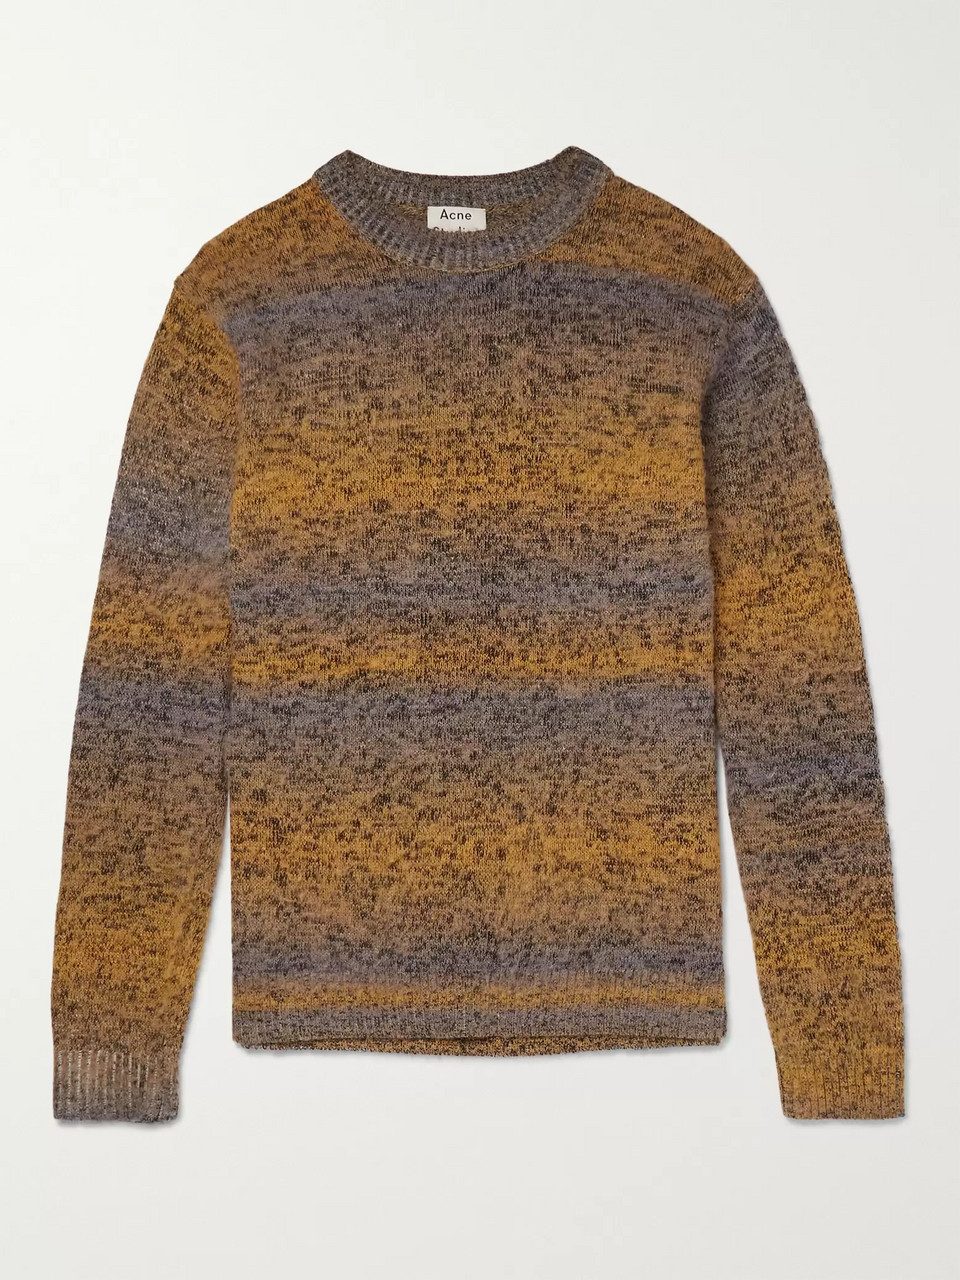 Acne Studios Kamal Space-Dyed Striped Mélange Knitted Sweater